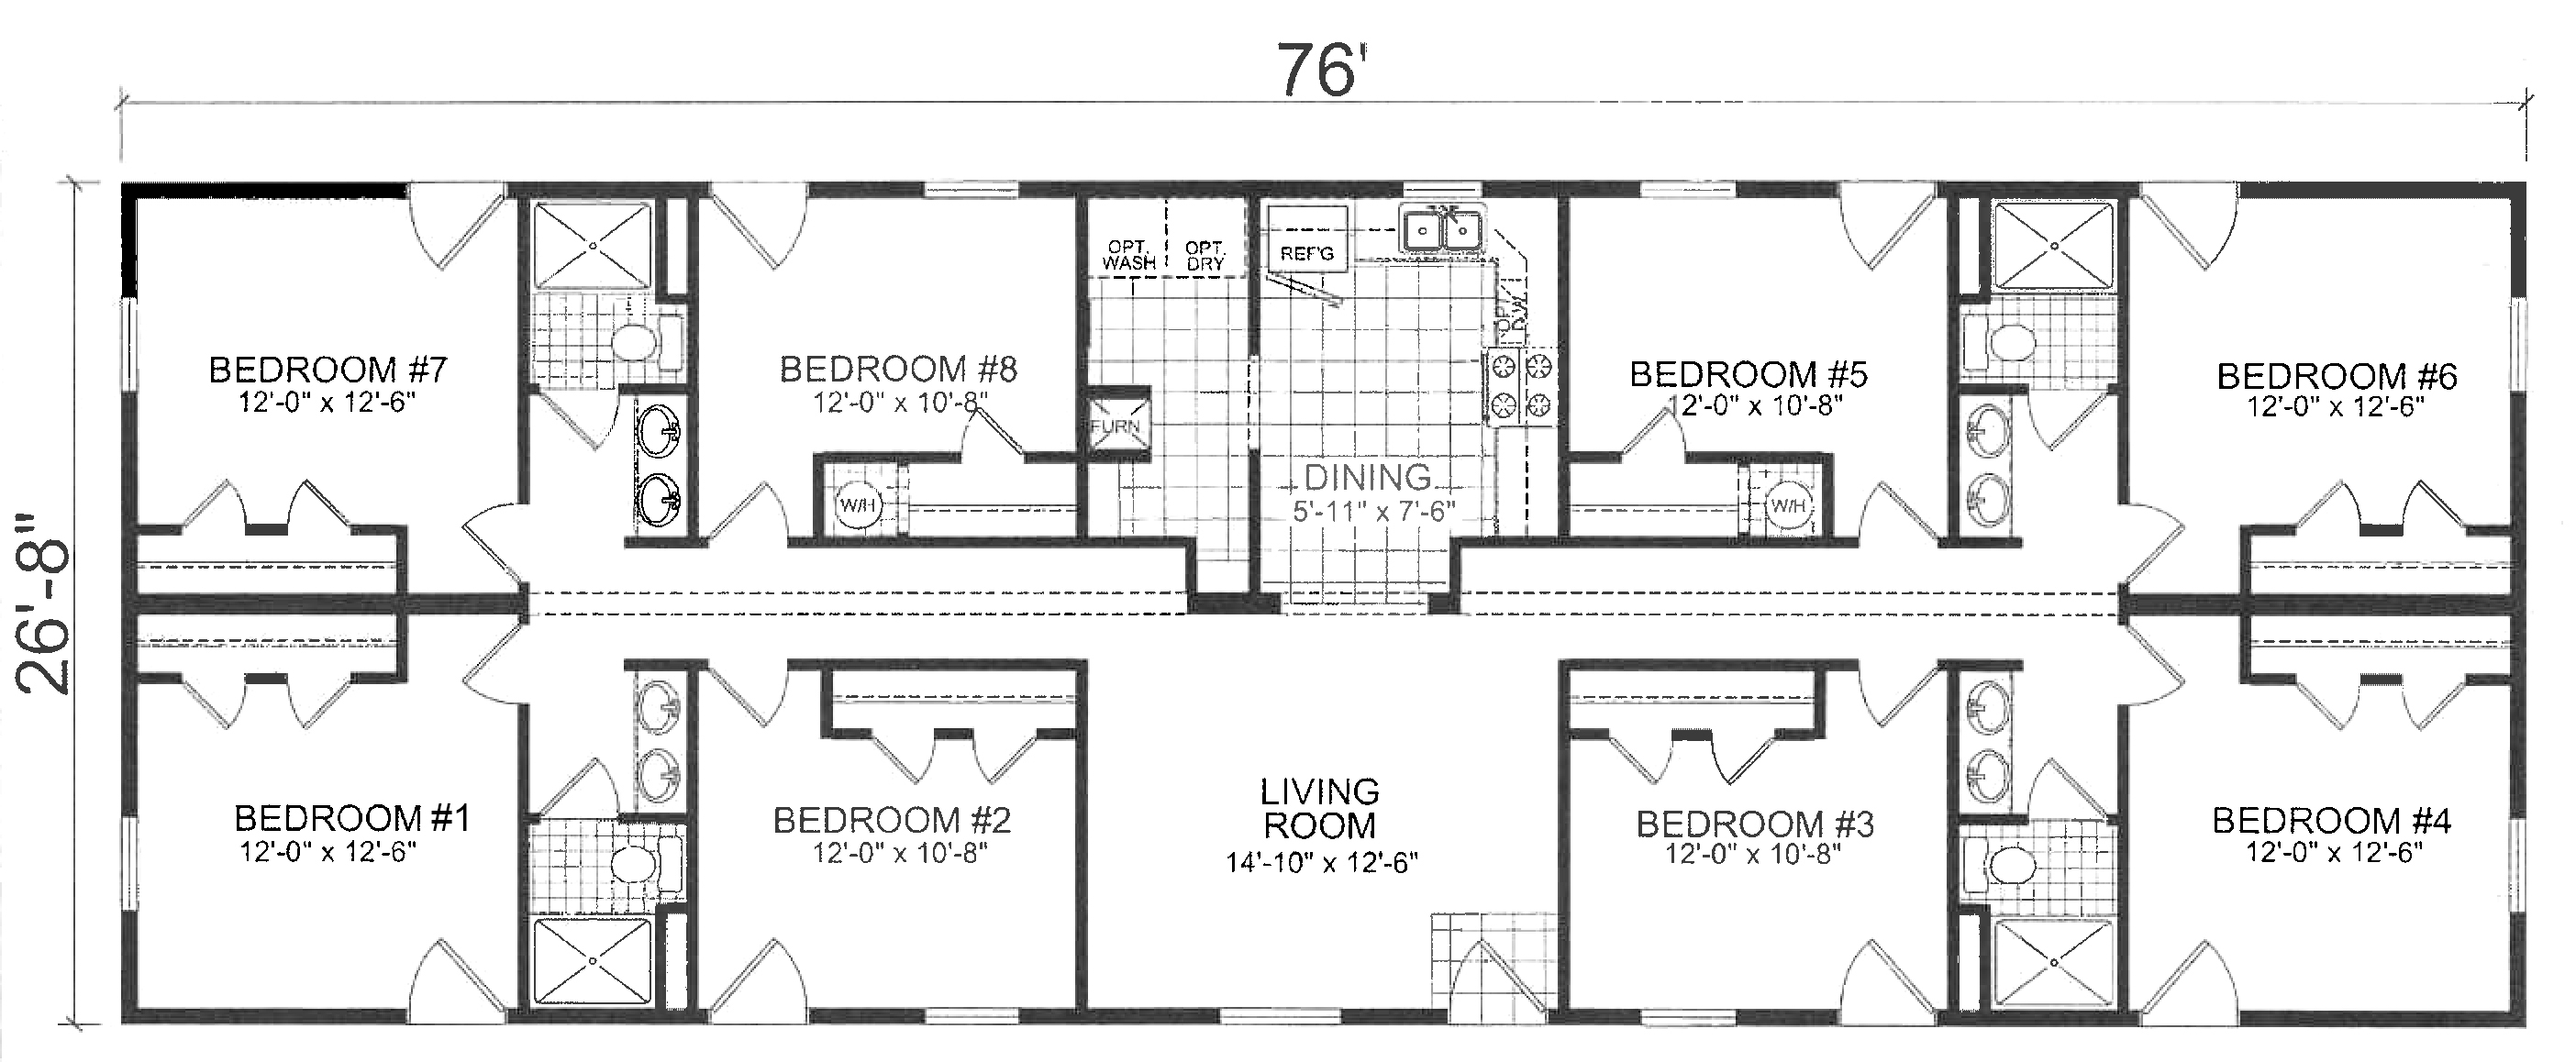 Unit layout at Amber Hills Lodging - 8 bedrooms, 4 bathrooms and plenty of living space.